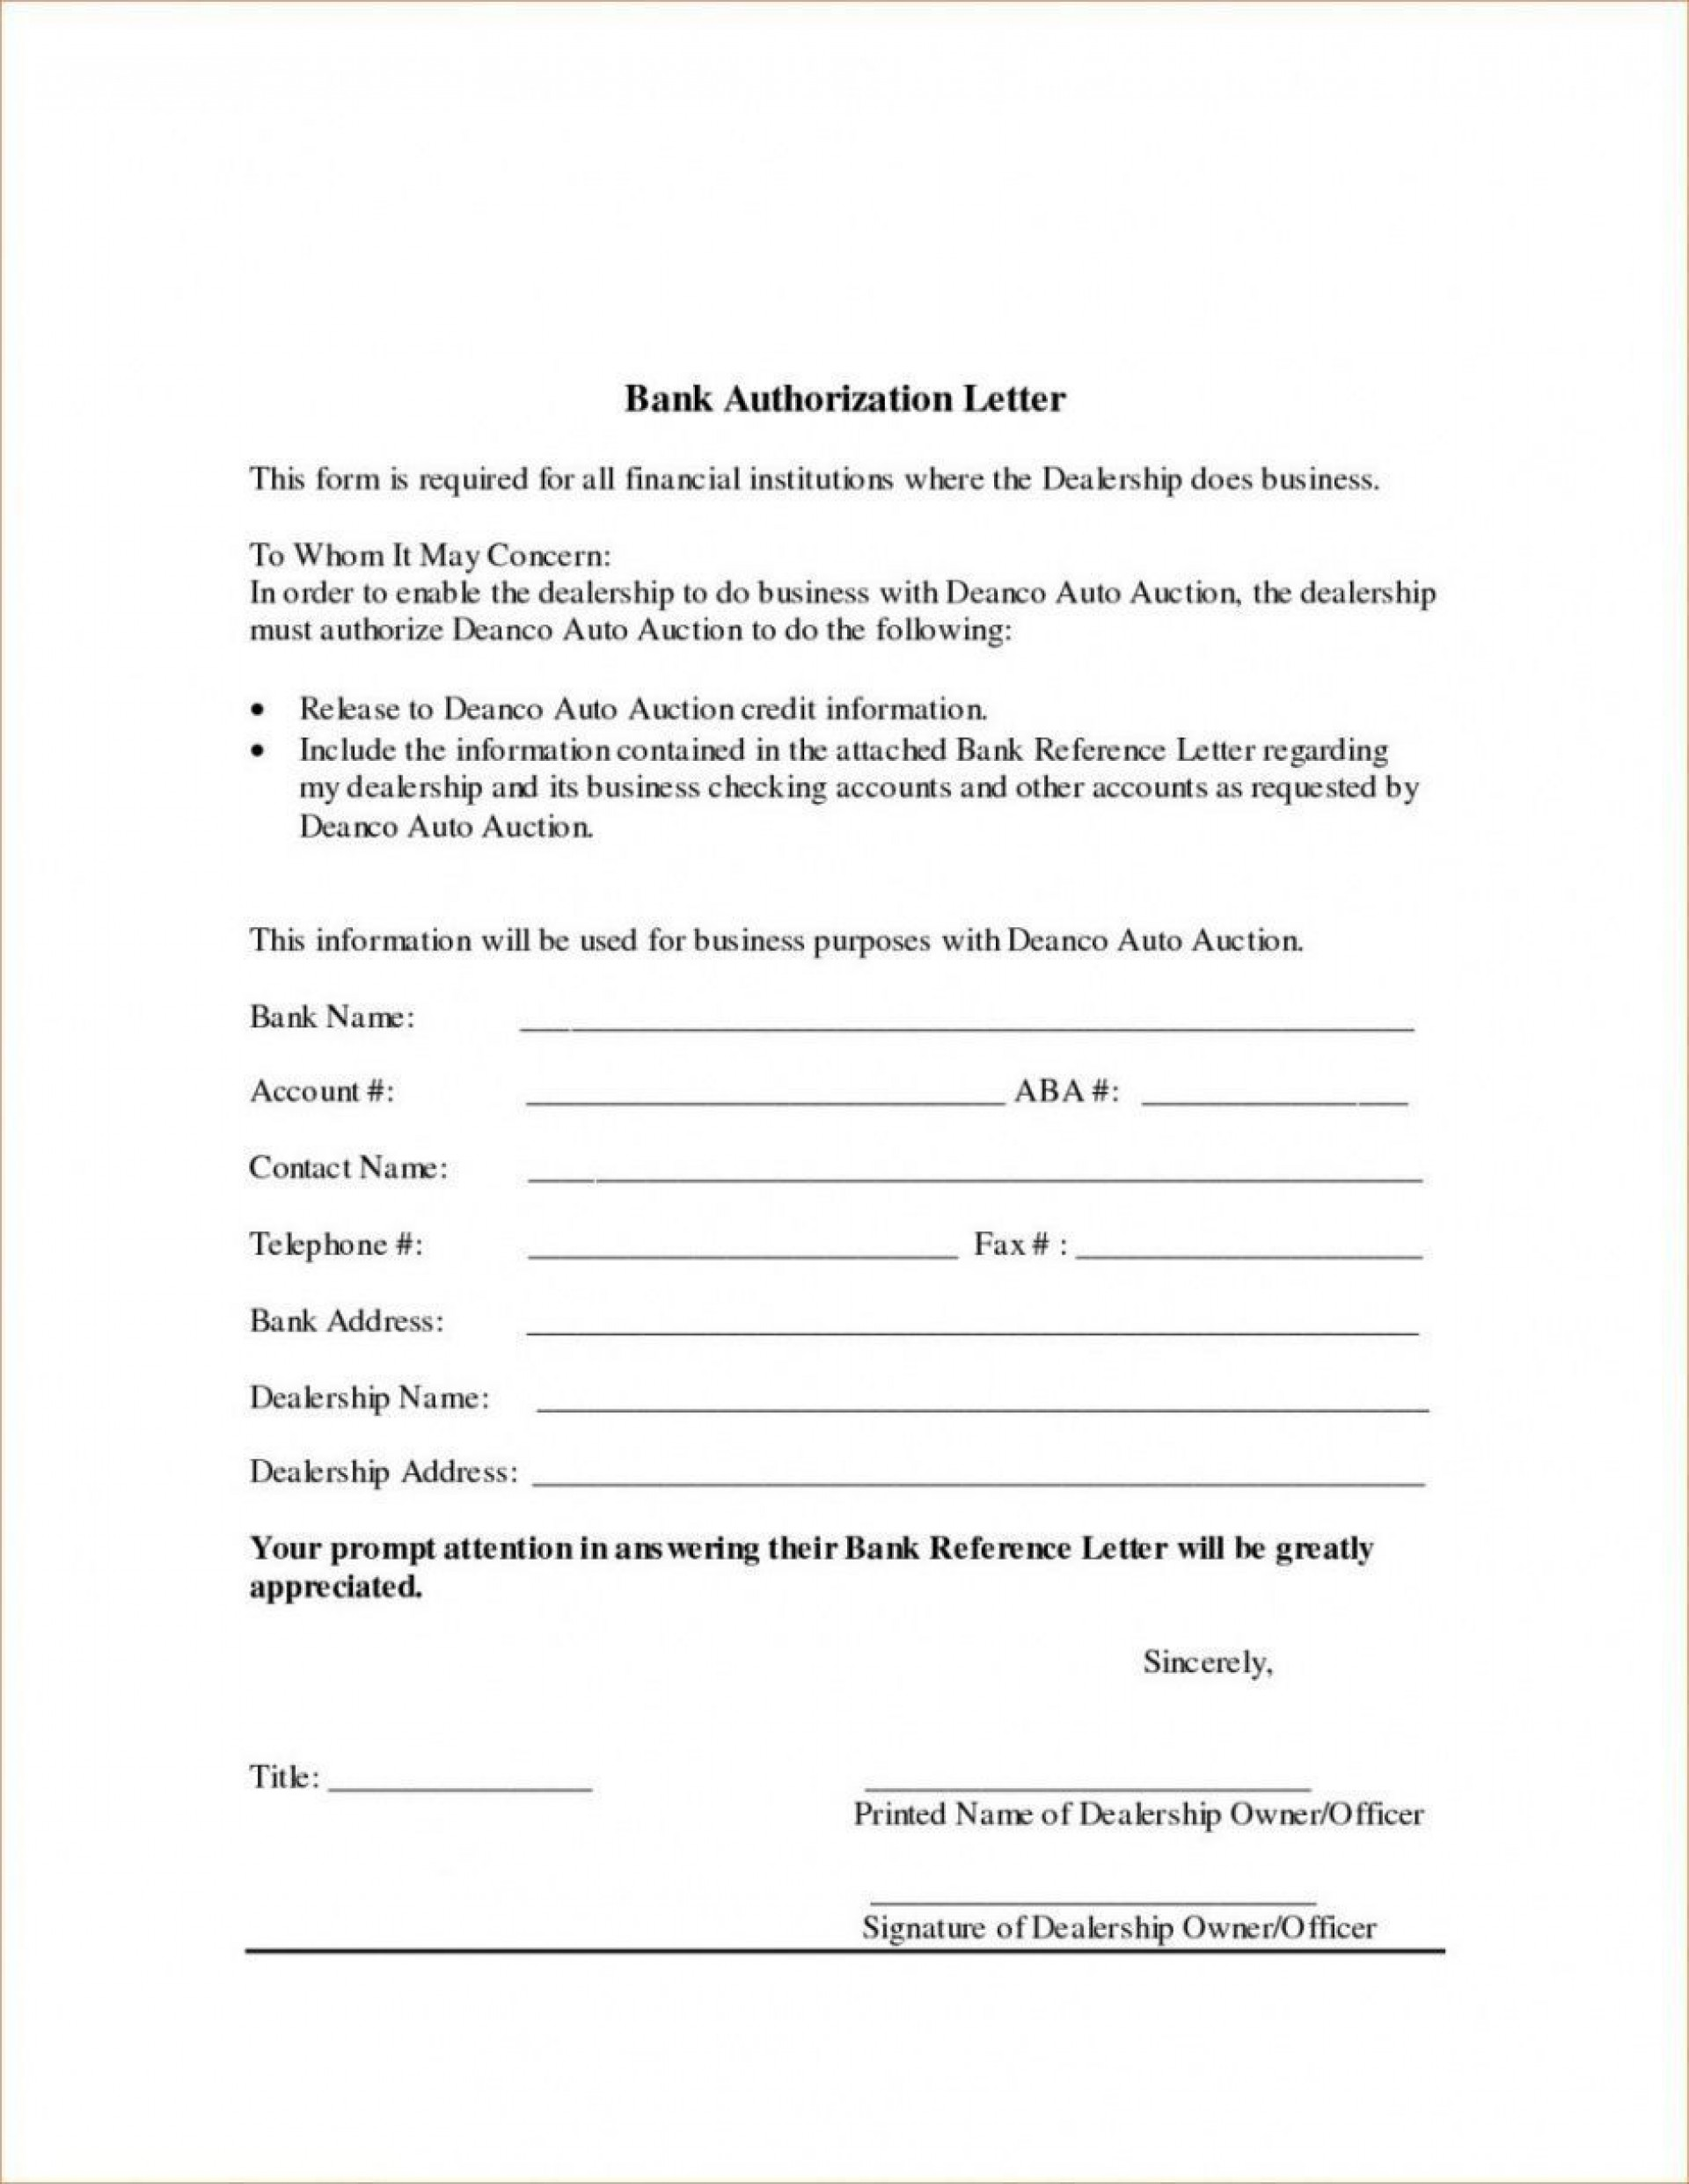 005 Remarkable Direct Deposit Agreement Authorization Form Template Inspiration 1920